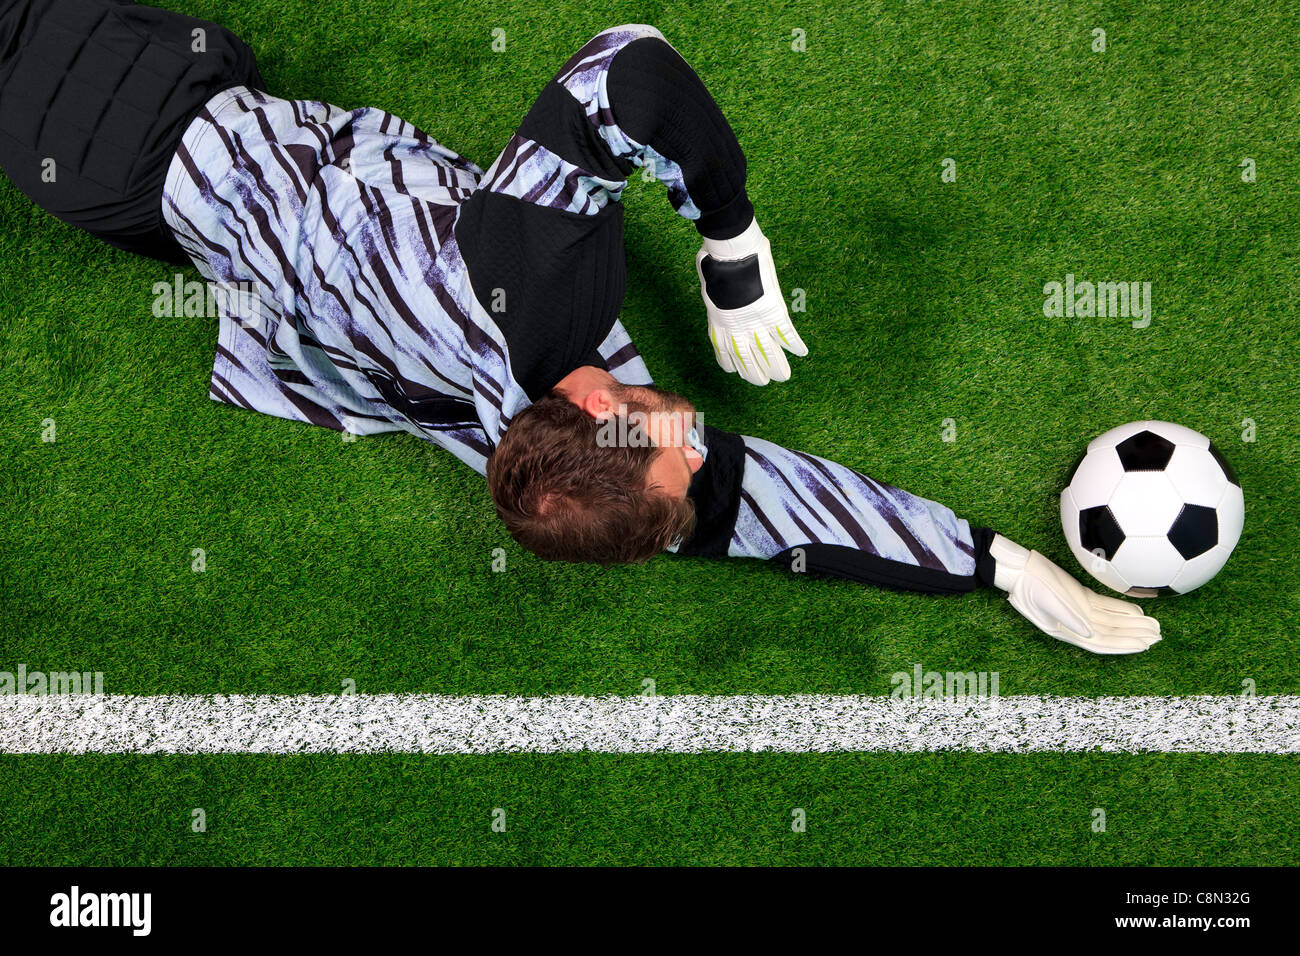 Overhead photo of a football goalkeeper diving to save the ball from crossing the goal line. - Stock Image